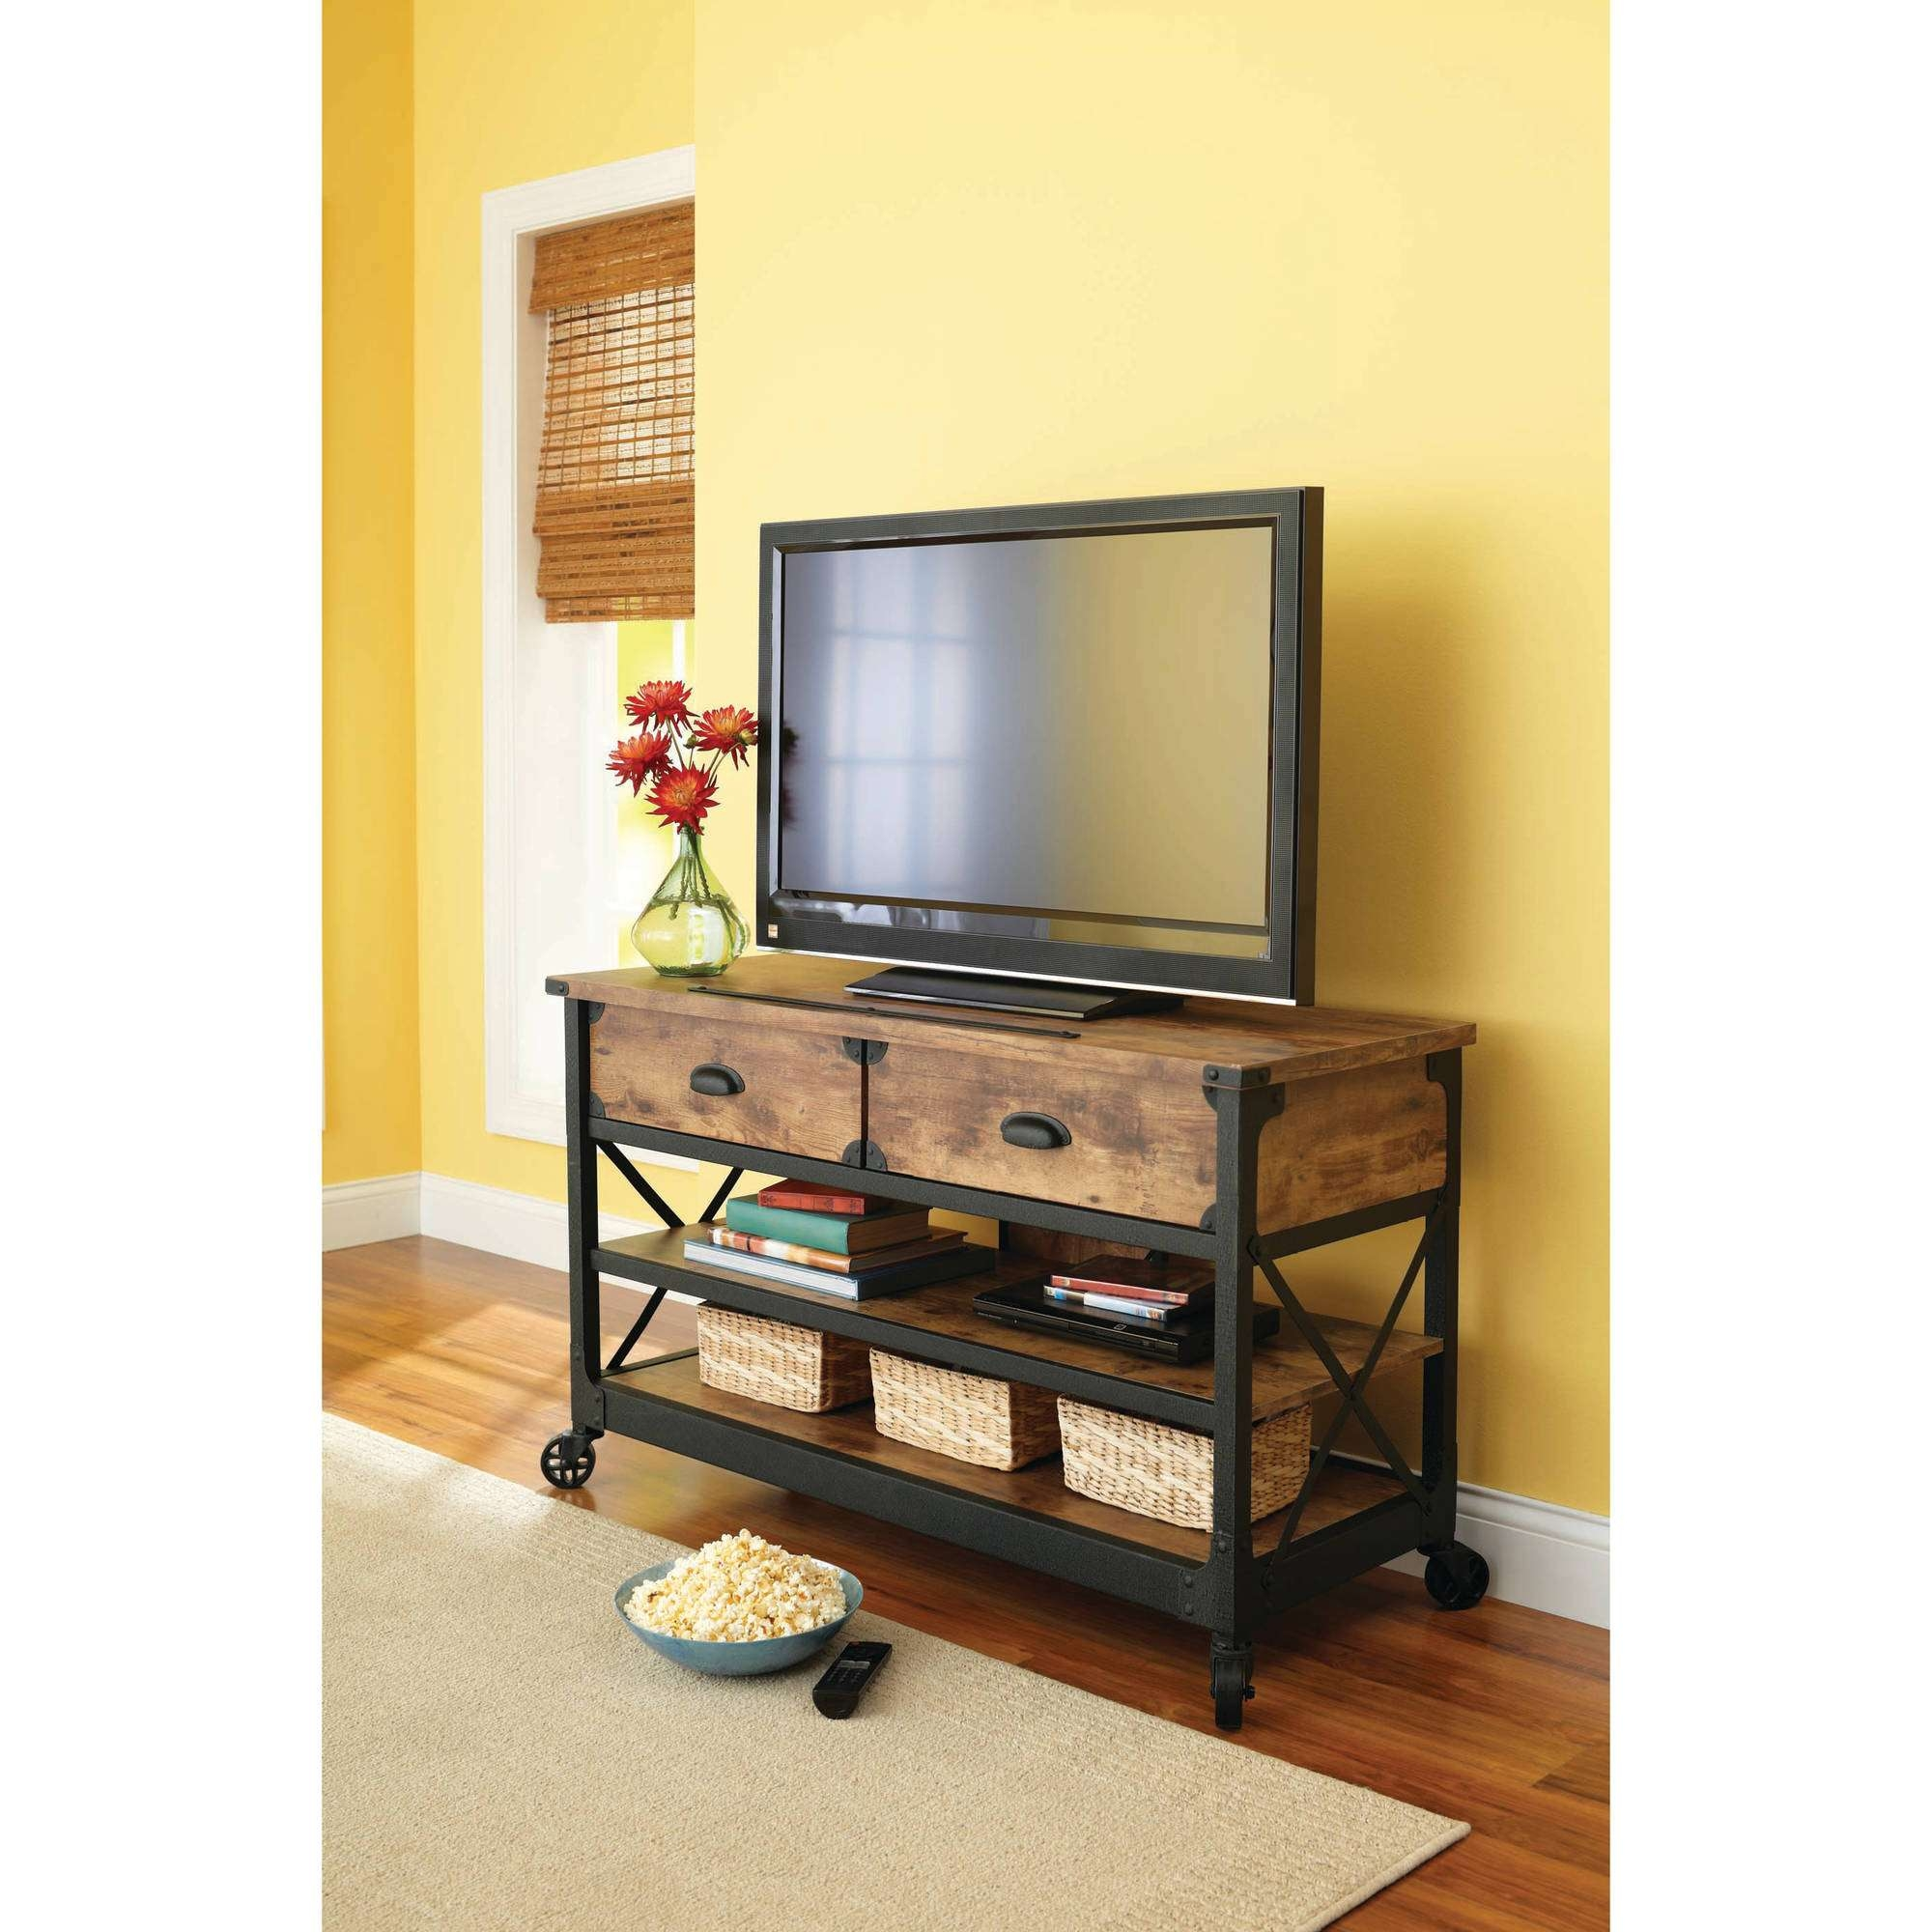 Fresh Rustic Tv Stands For Flat Screens 59 In Home Designing Regarding Rustic Tv Cabinets (Gallery 20 of 20)